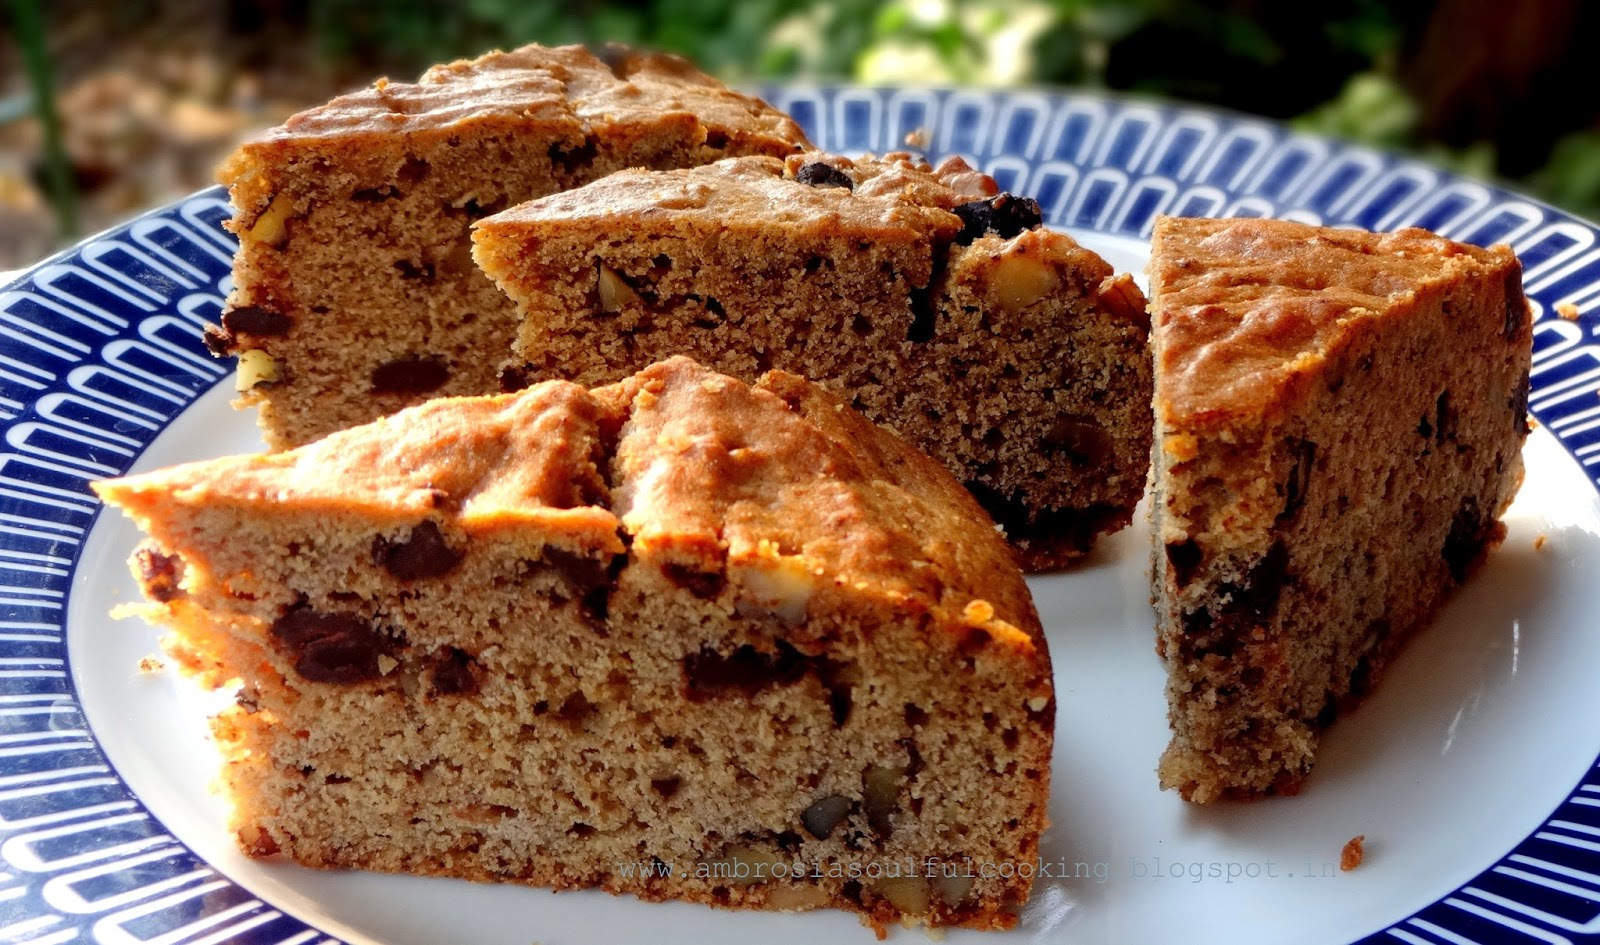 We had it with Banana Walnut & Chocolate Cookie Cake that wasbaked in ...